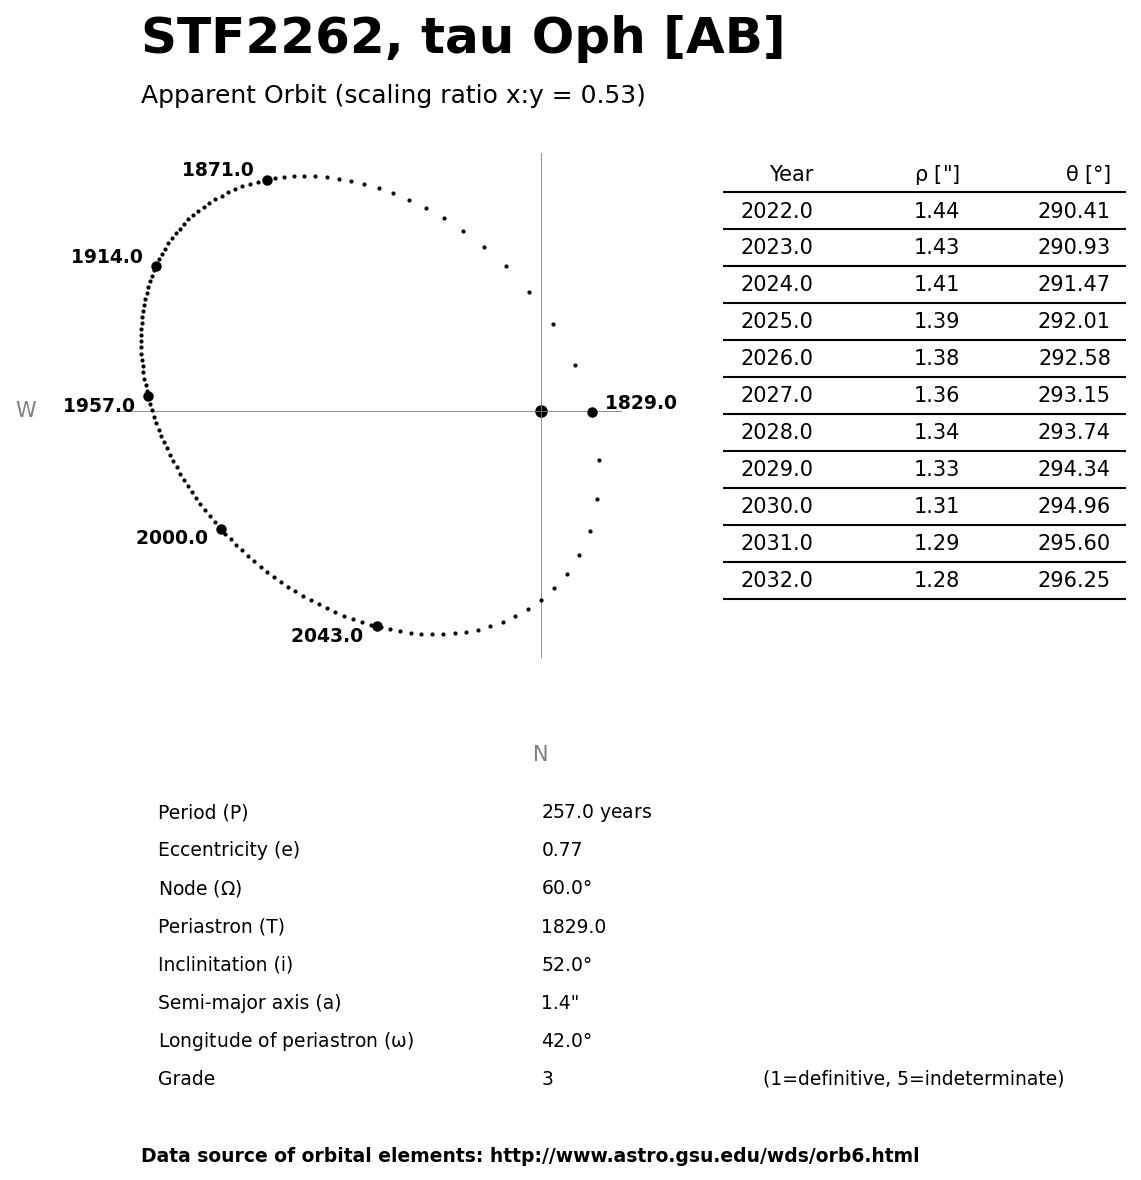 ../images/binary-star-orbits/STF2262-AB-orbit.jpg